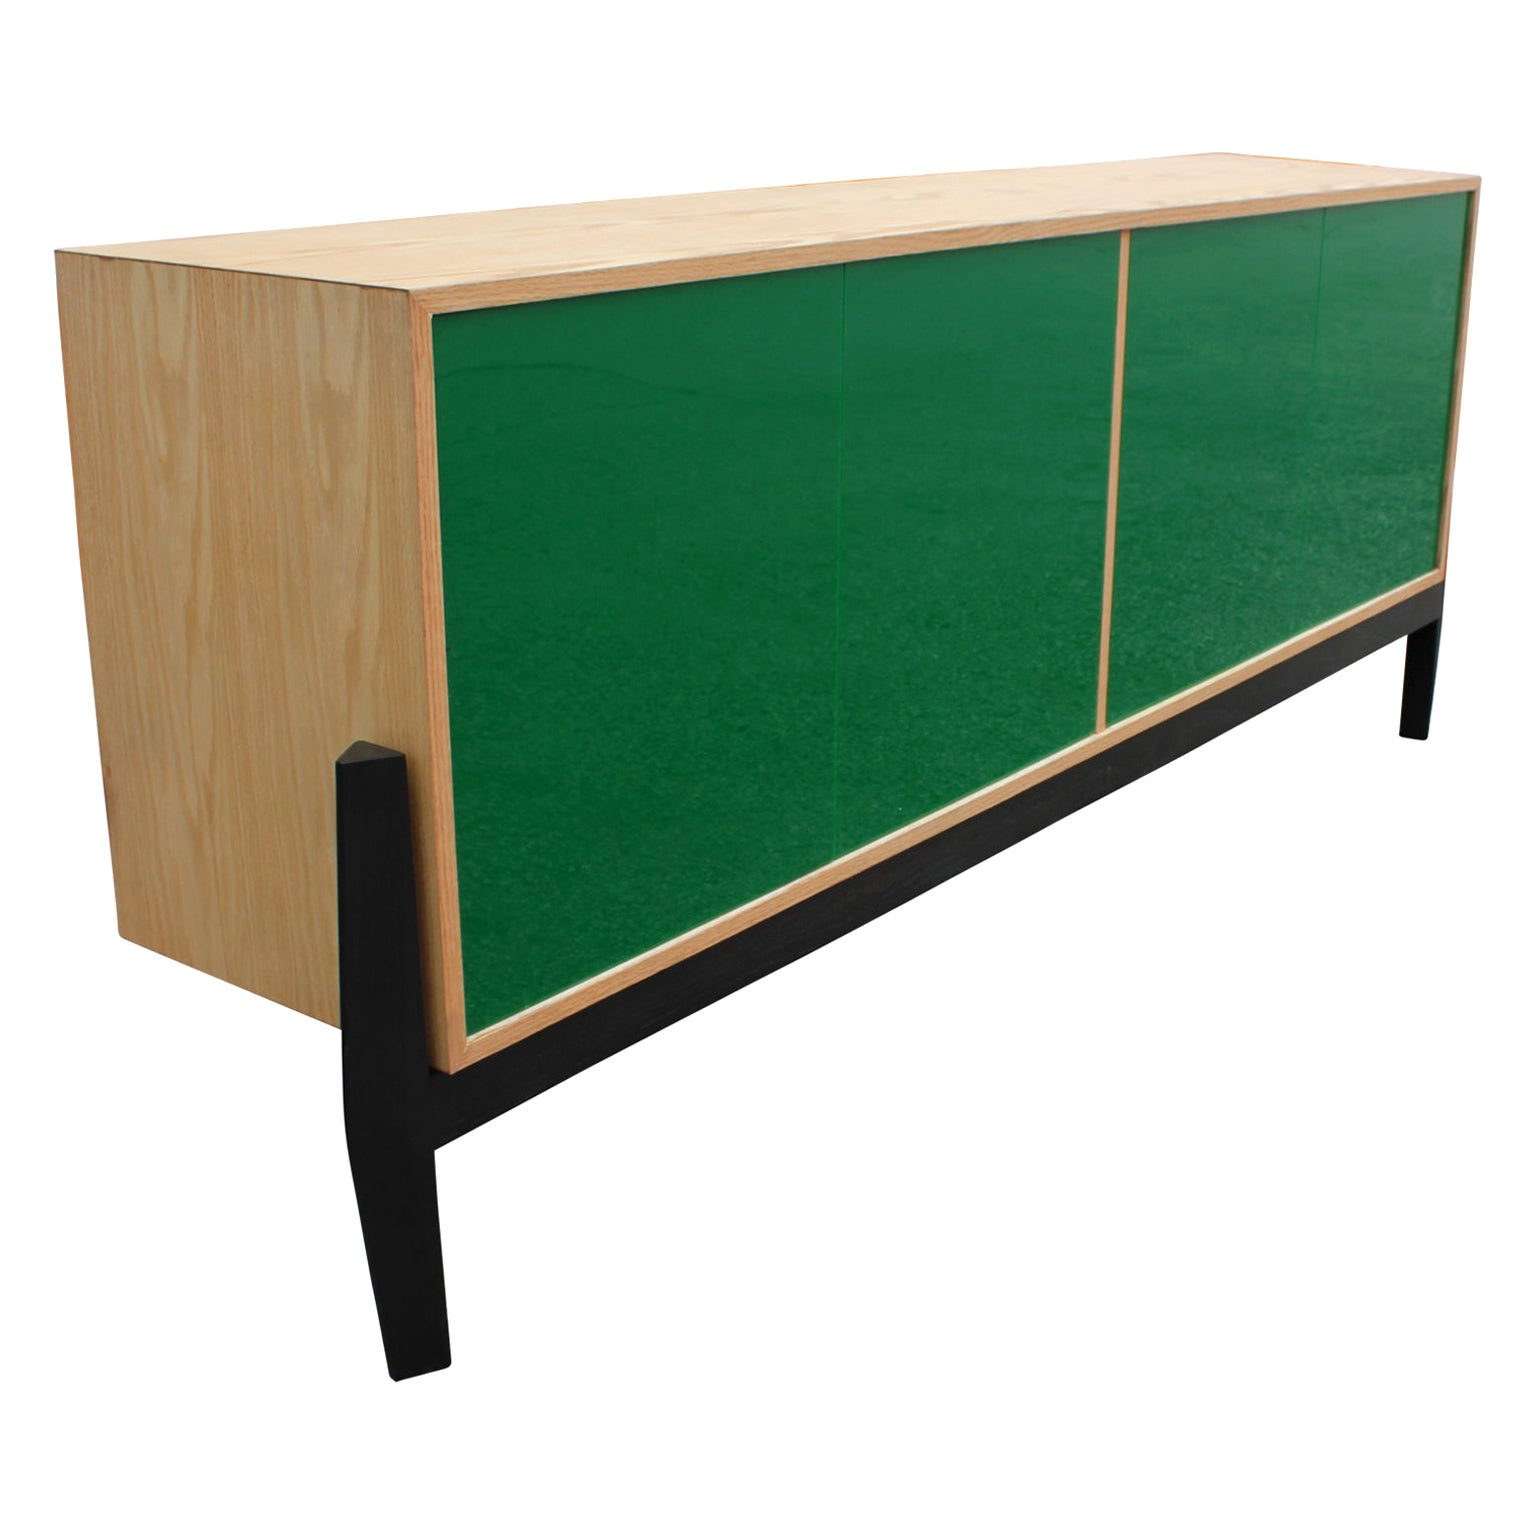 Custom Modern Sideboard or Credenza with Green Lucite Doors